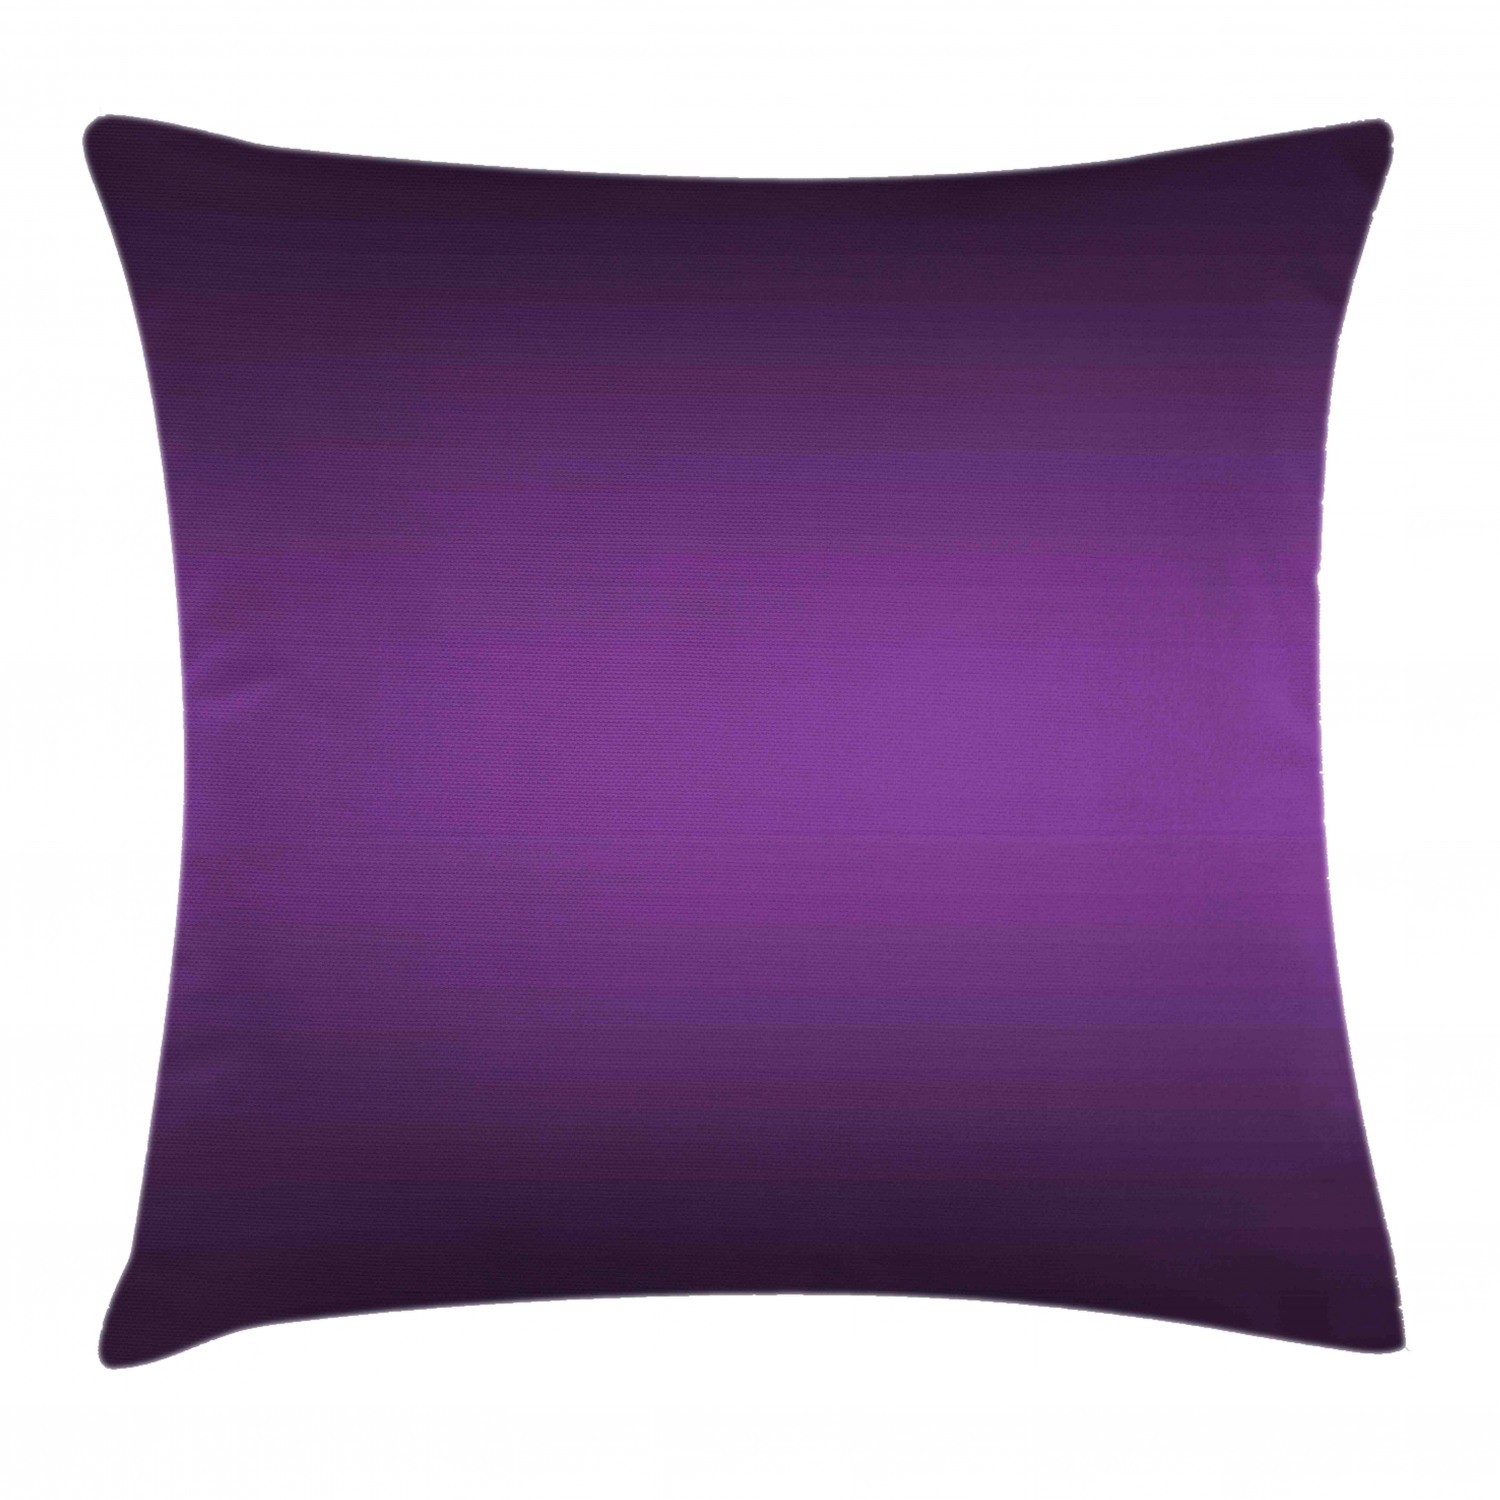 Inspired By Gabxxrielle Ombré Jouercosmetics Essential: Ombre Throw Pillow Cushion Cover, Cinema Curtain Inspired